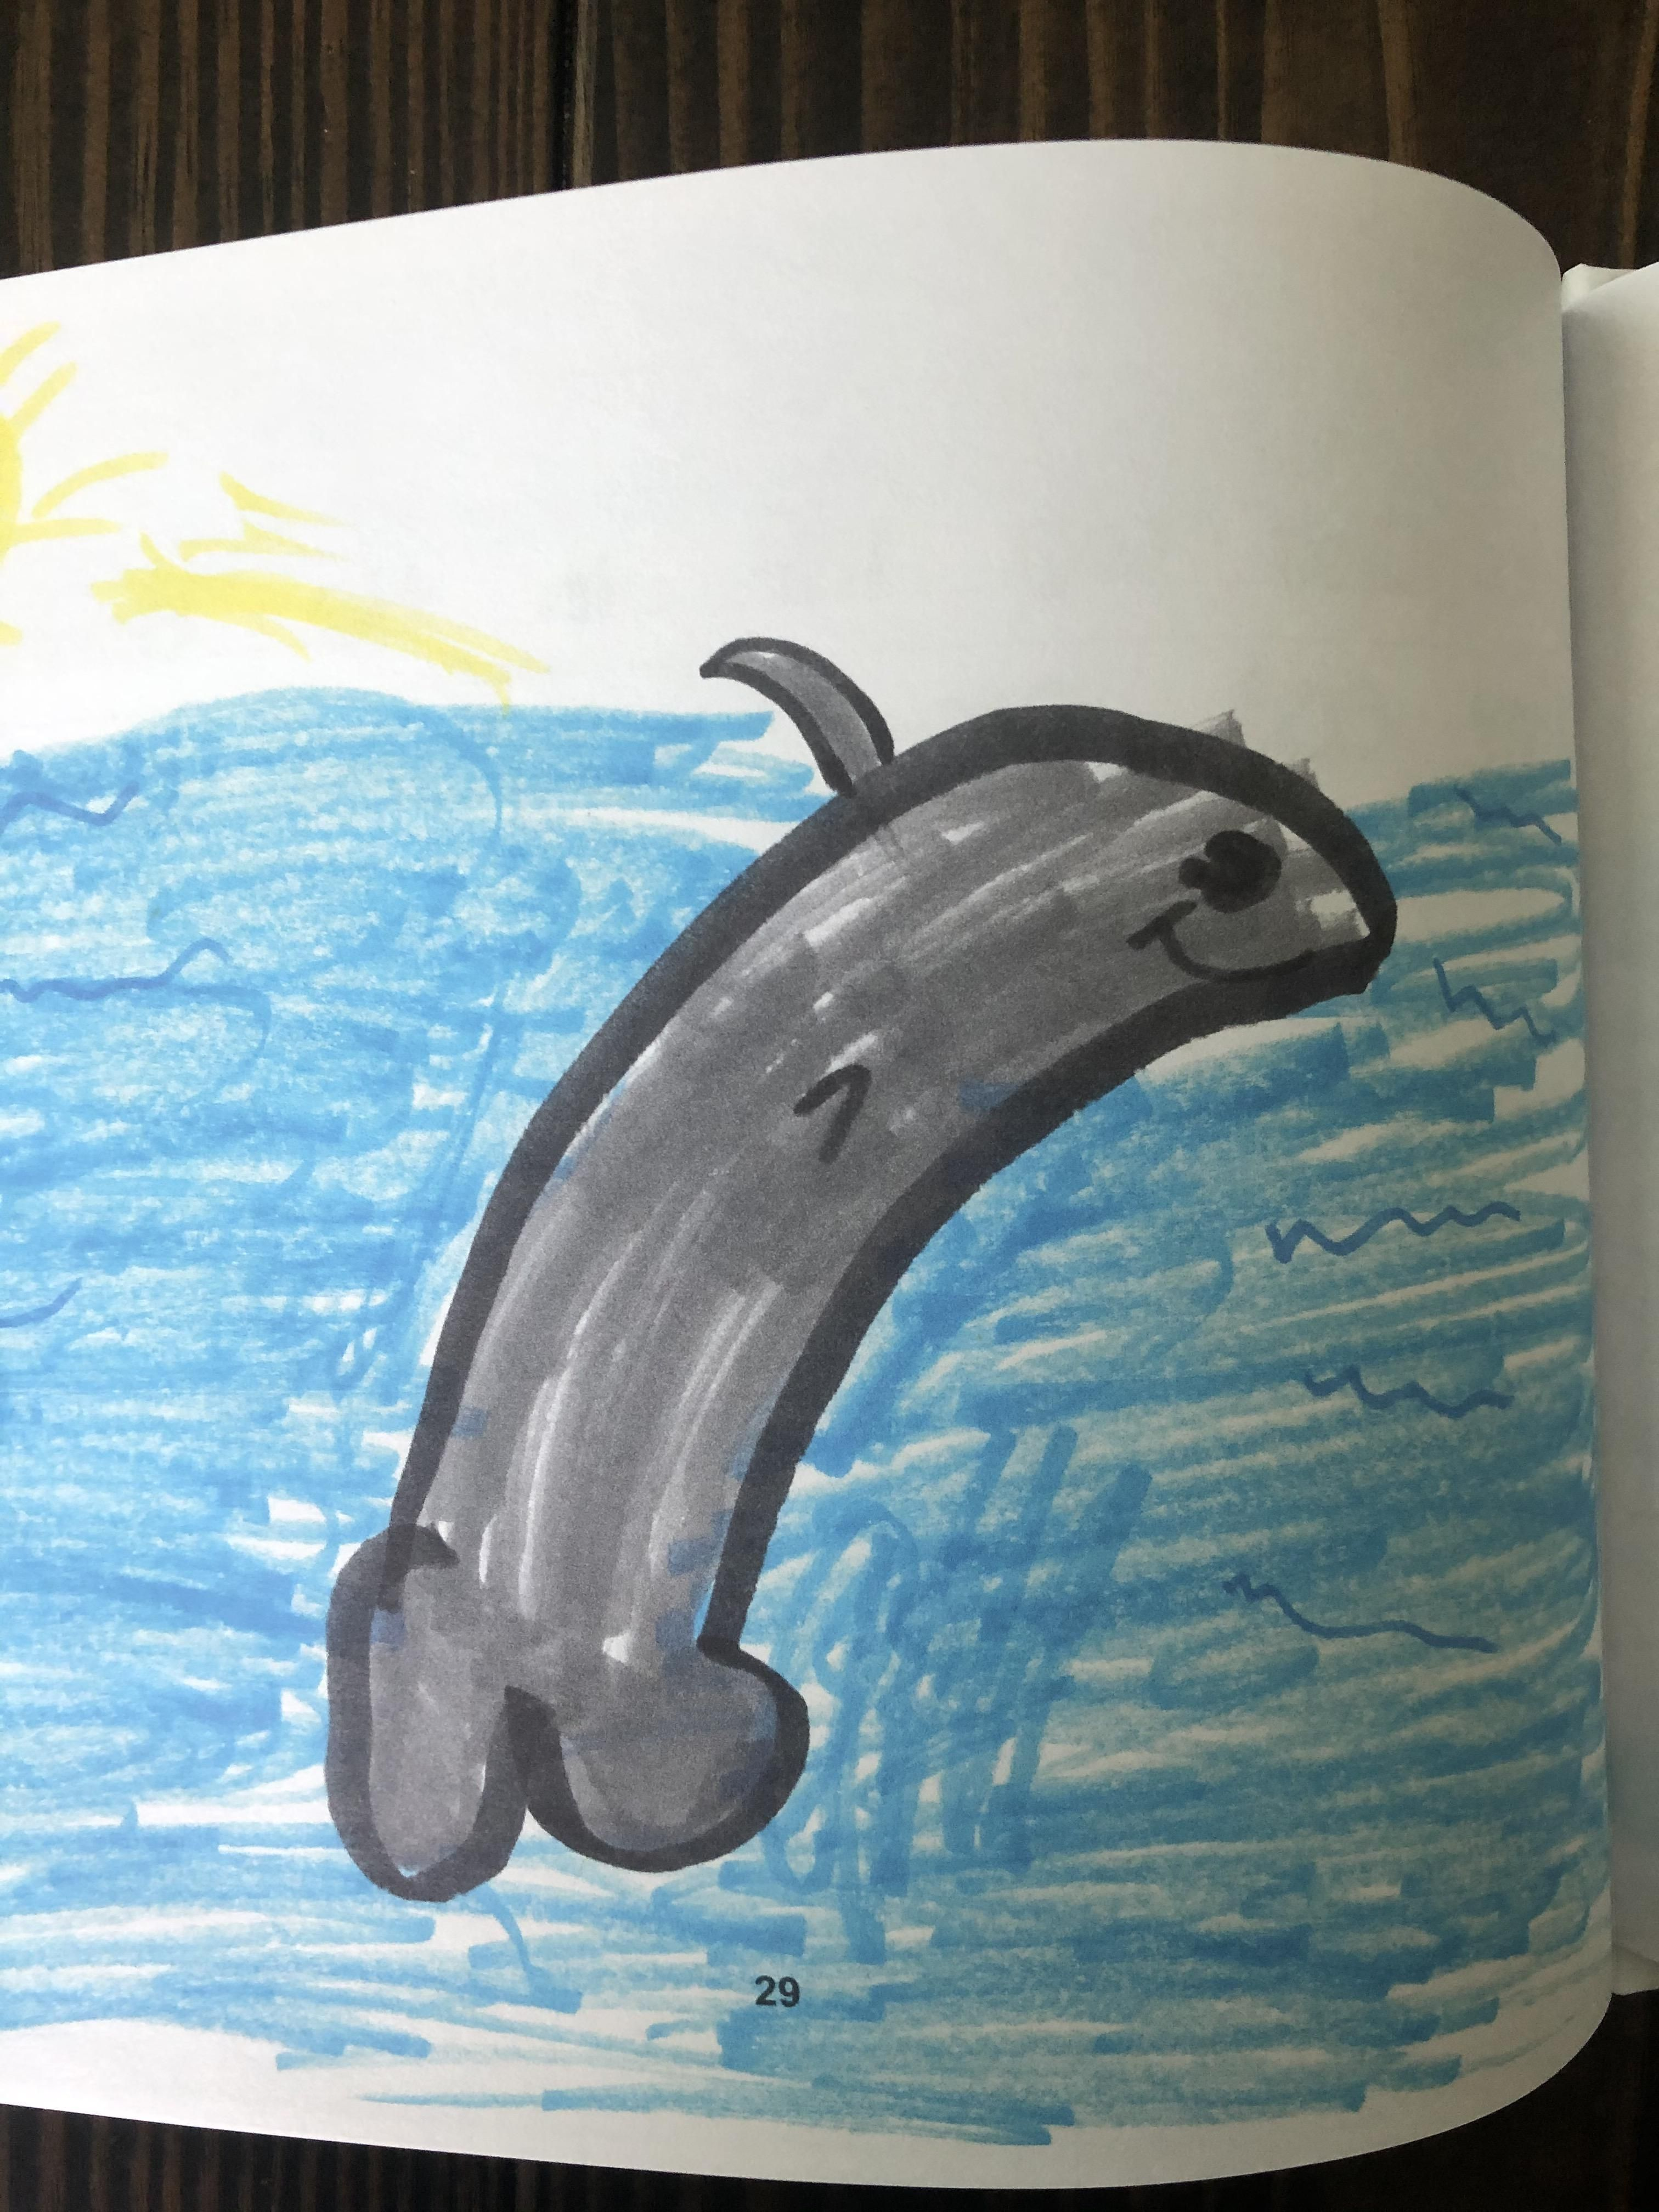 My daughter's kindergarten class published a book of their animal drawings. My daughter drew a penis dolphin.